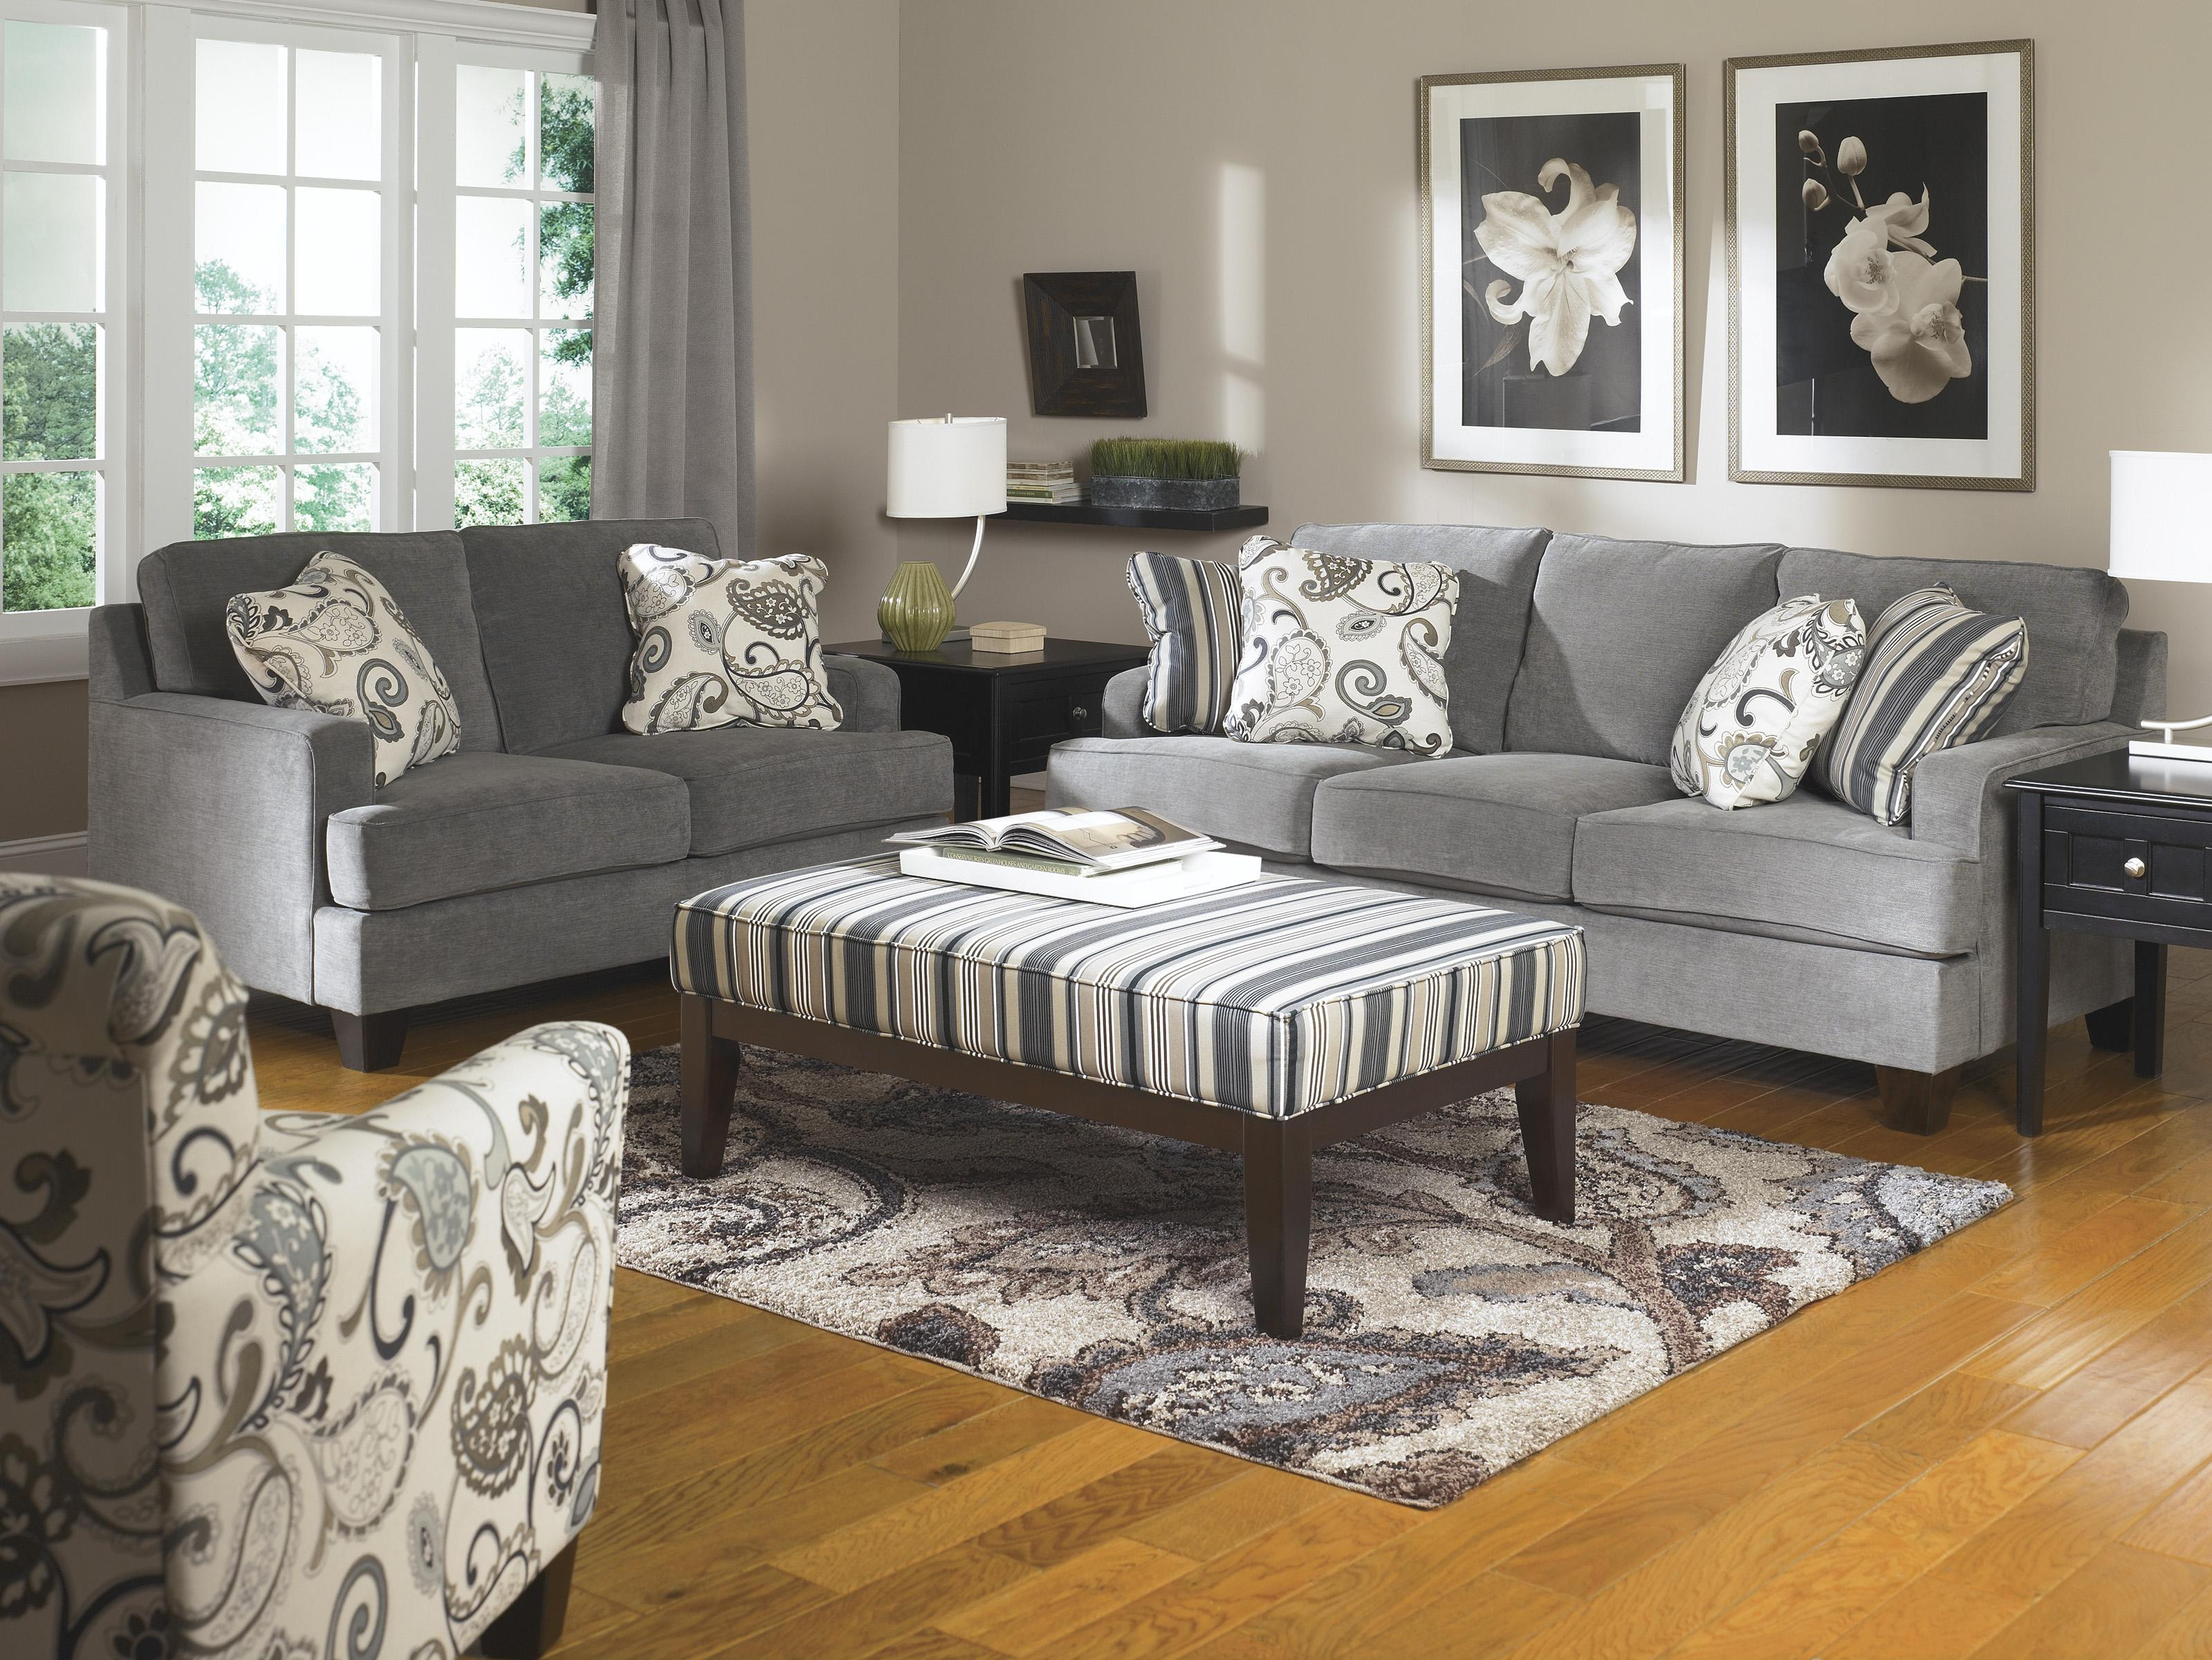 Ashley furniture yvette steel stationary living room for Living room furniture groups